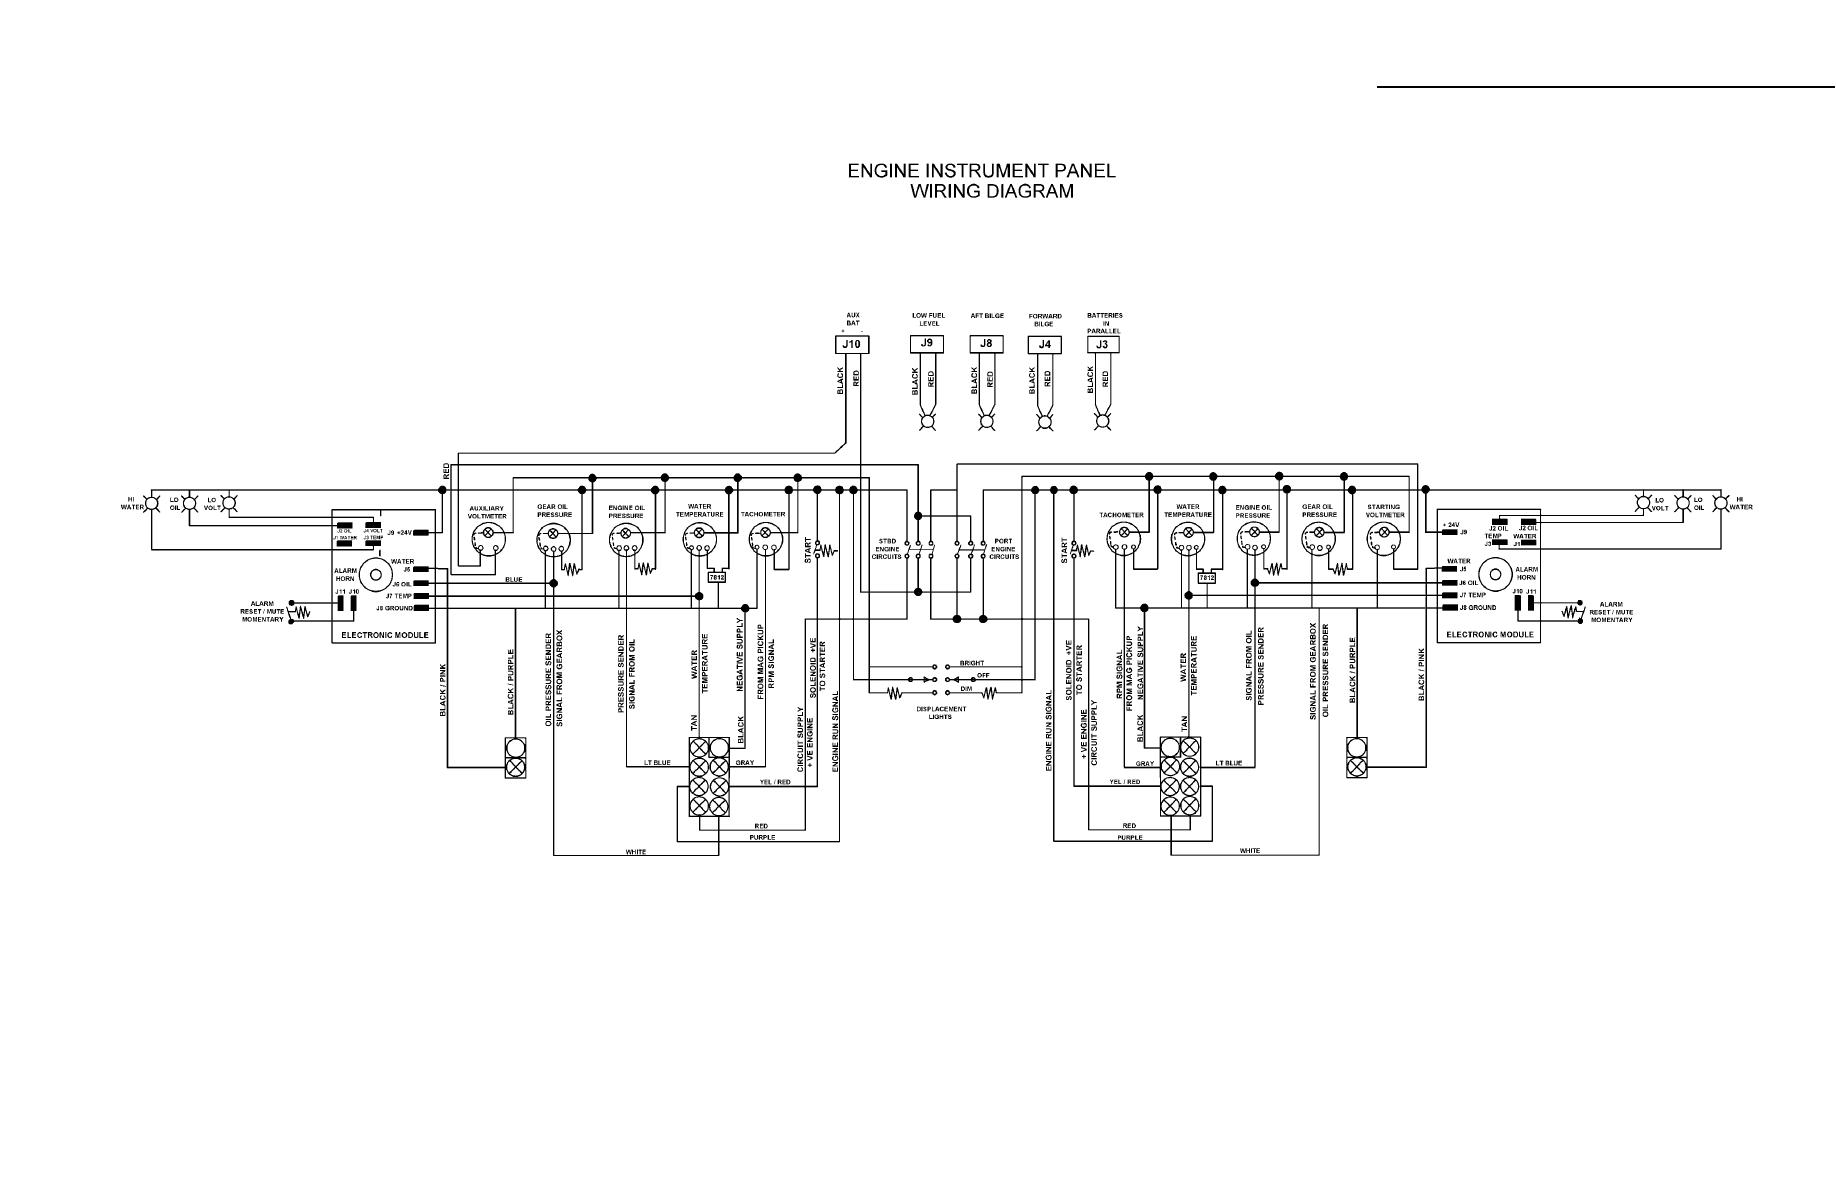 0831980879im instrument panel wiring harness schematic foldout 11 boat instrument panel wiring diagrams at fashall.co